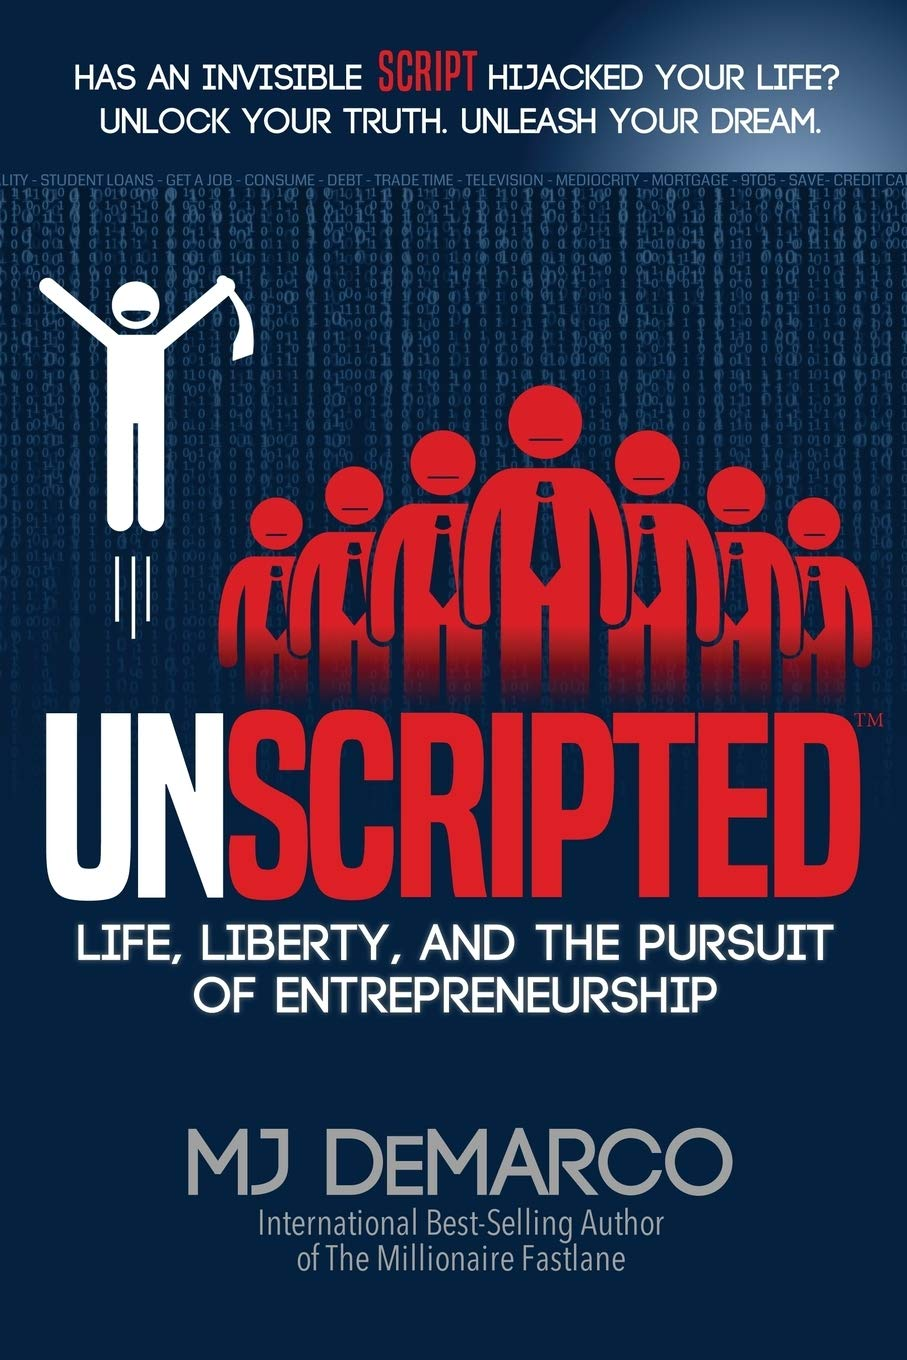 b5d3b3f6a324 UNSCRIPTED: Life, Liberty, and the Pursuit of Entrepreneurship ...